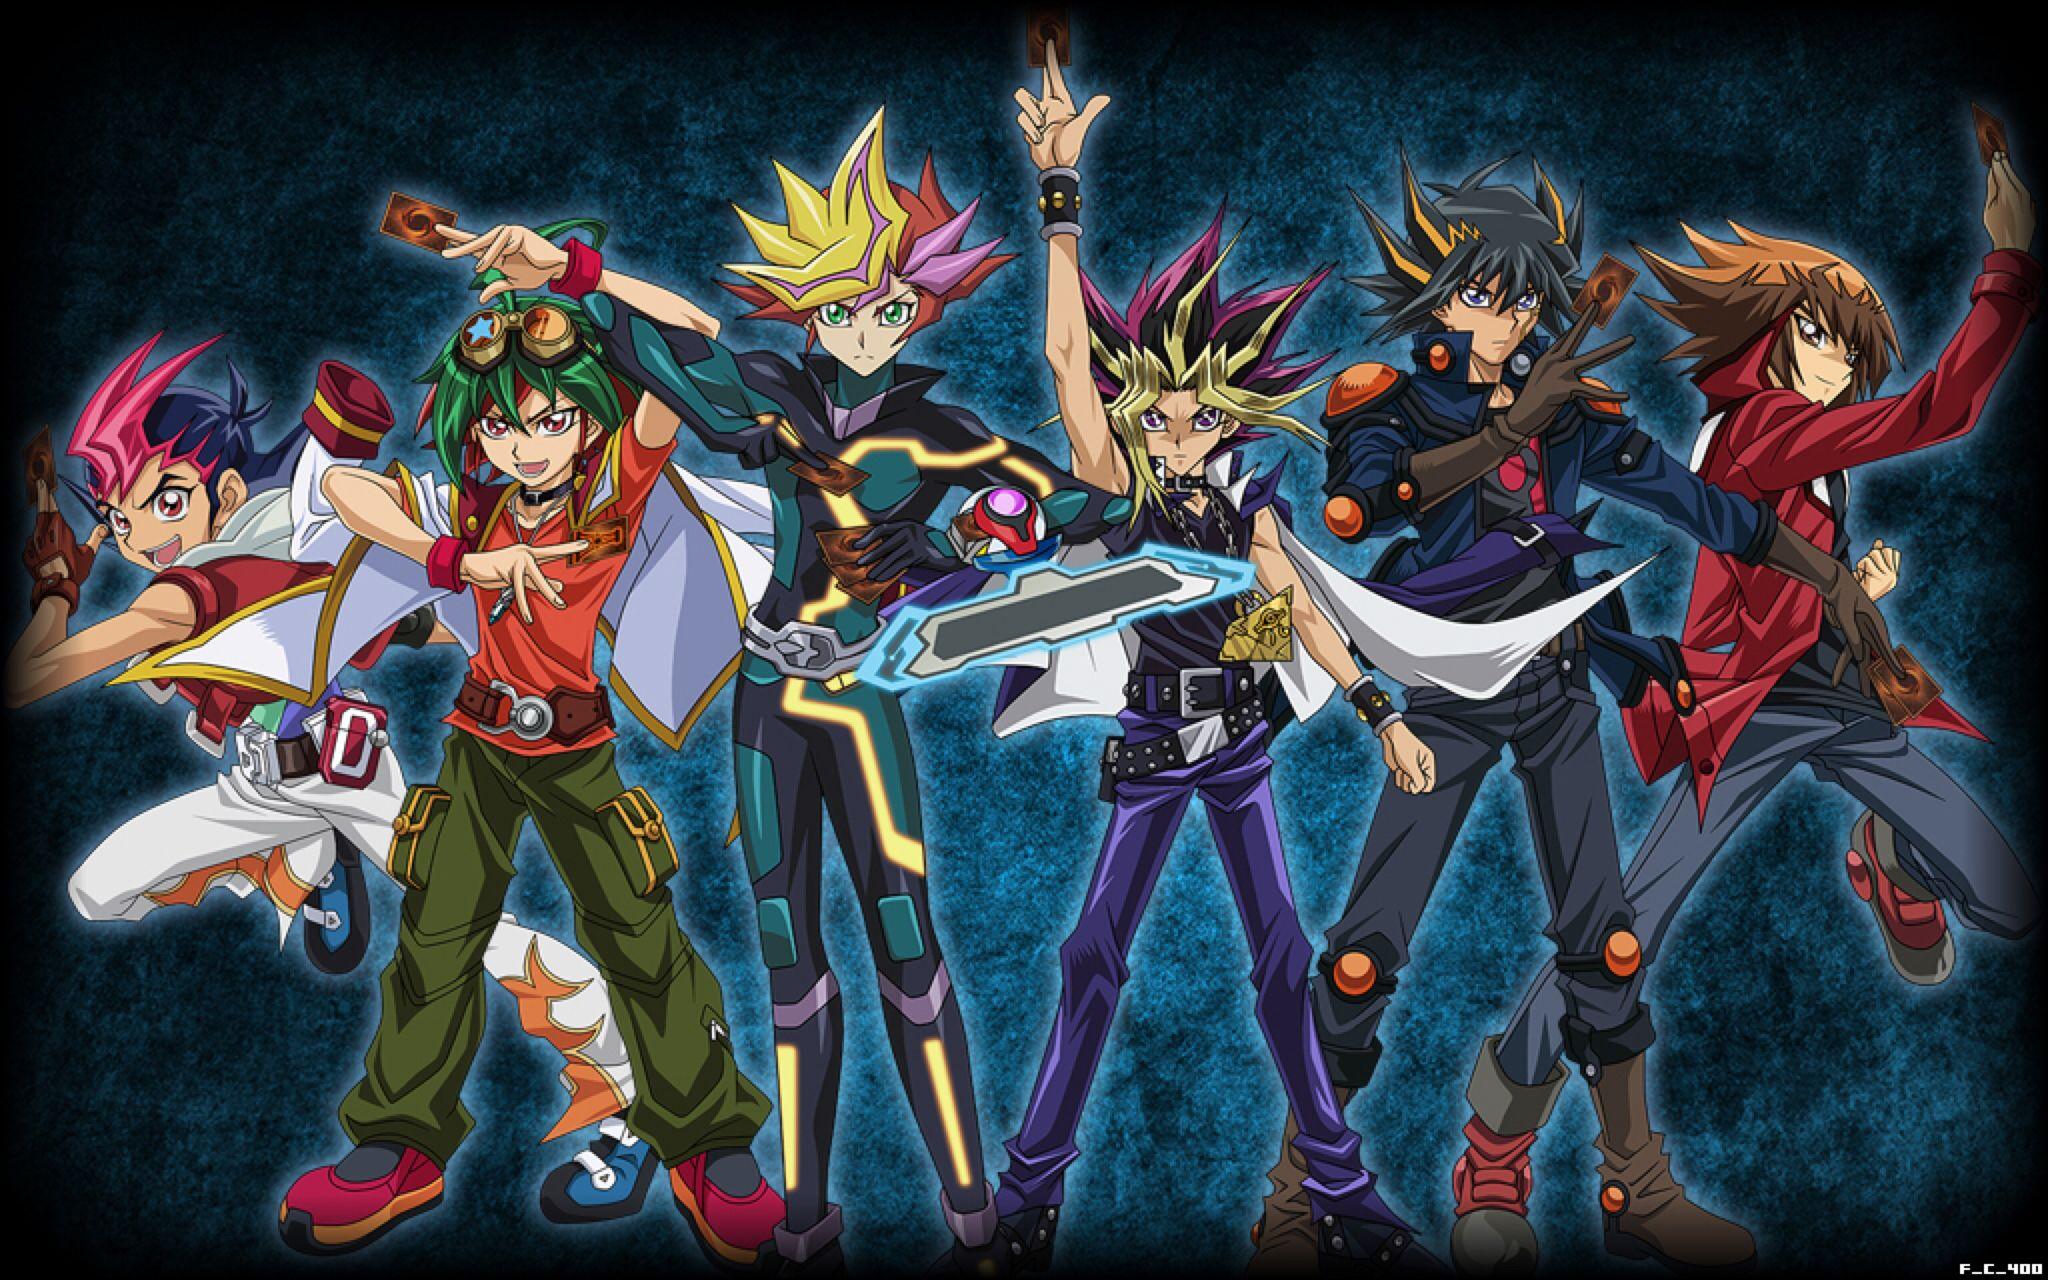 All Yu Gi Oh Protagonists Wallpaper Background By Fackuula12 On Deviantart Yugioh Yugioh Monsters Anime Characters